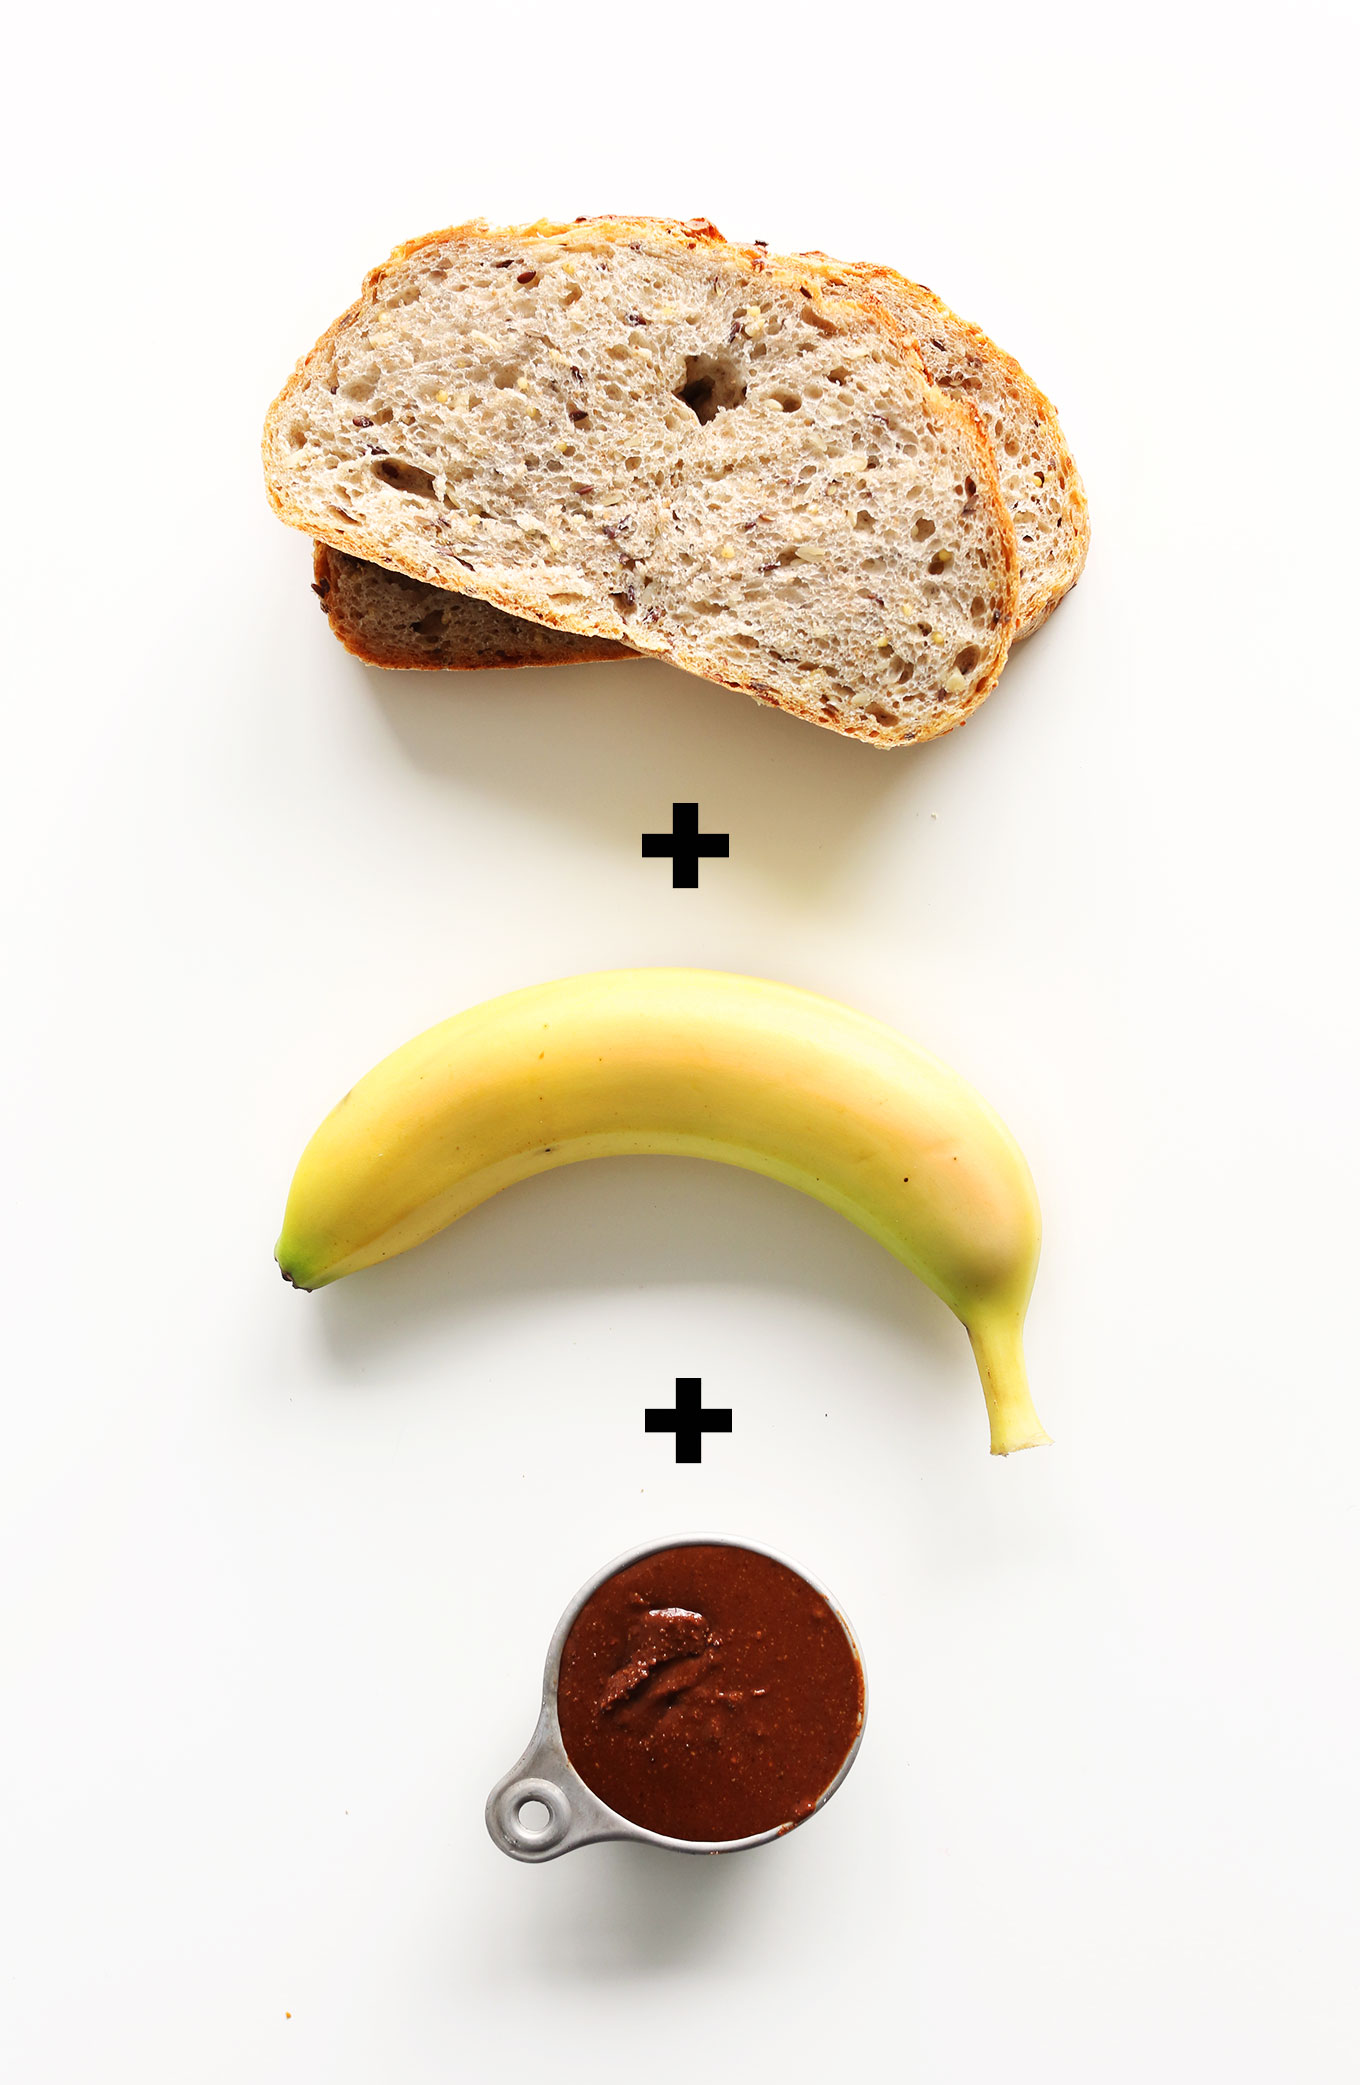 Bread, banana, and homemade vegan nutella for making a delicious treat